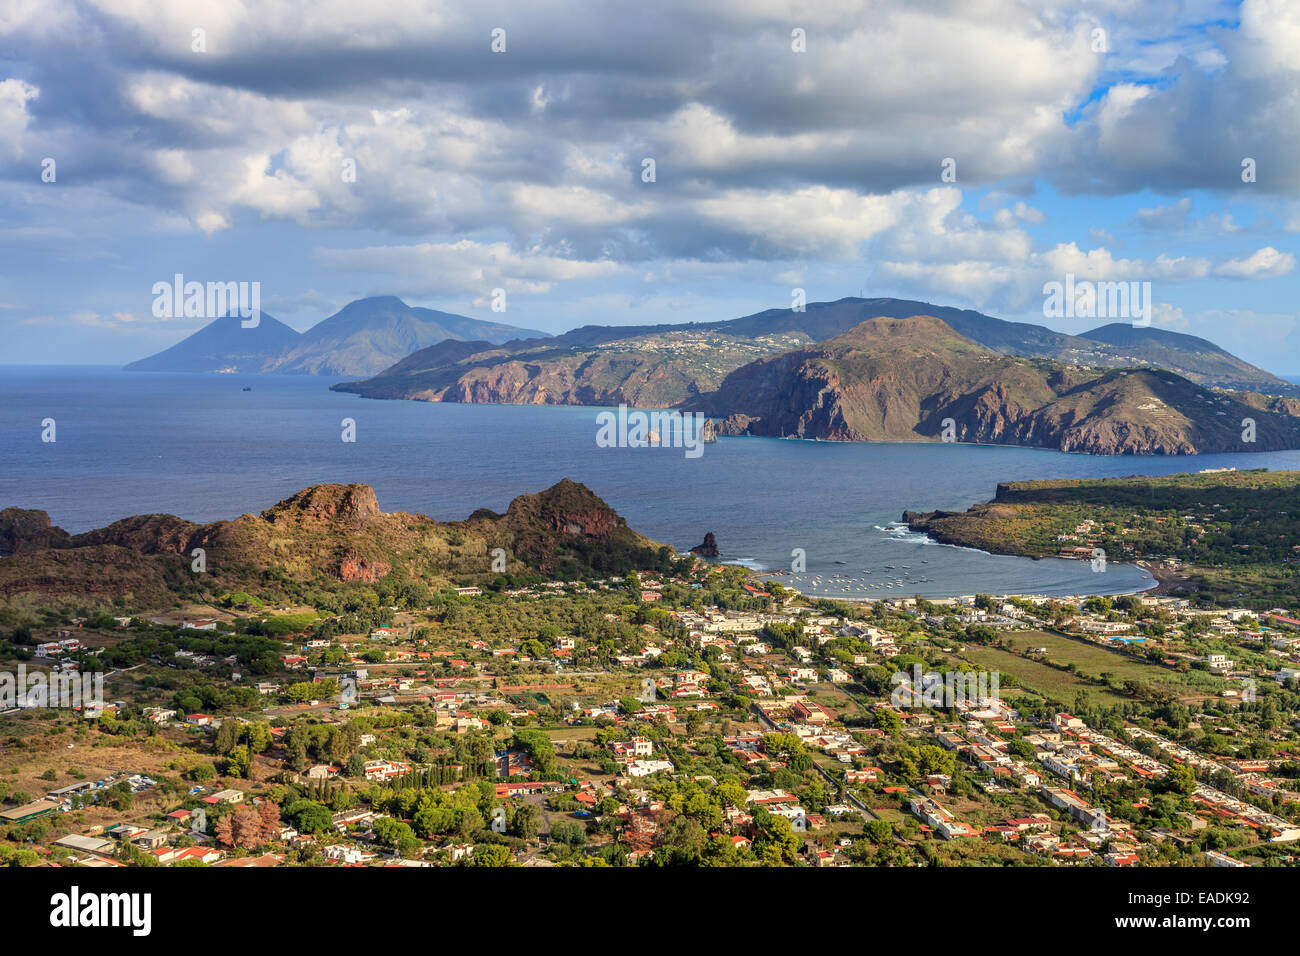 Panoramic view of the Aeolian islands from Vulcano - Stock Image